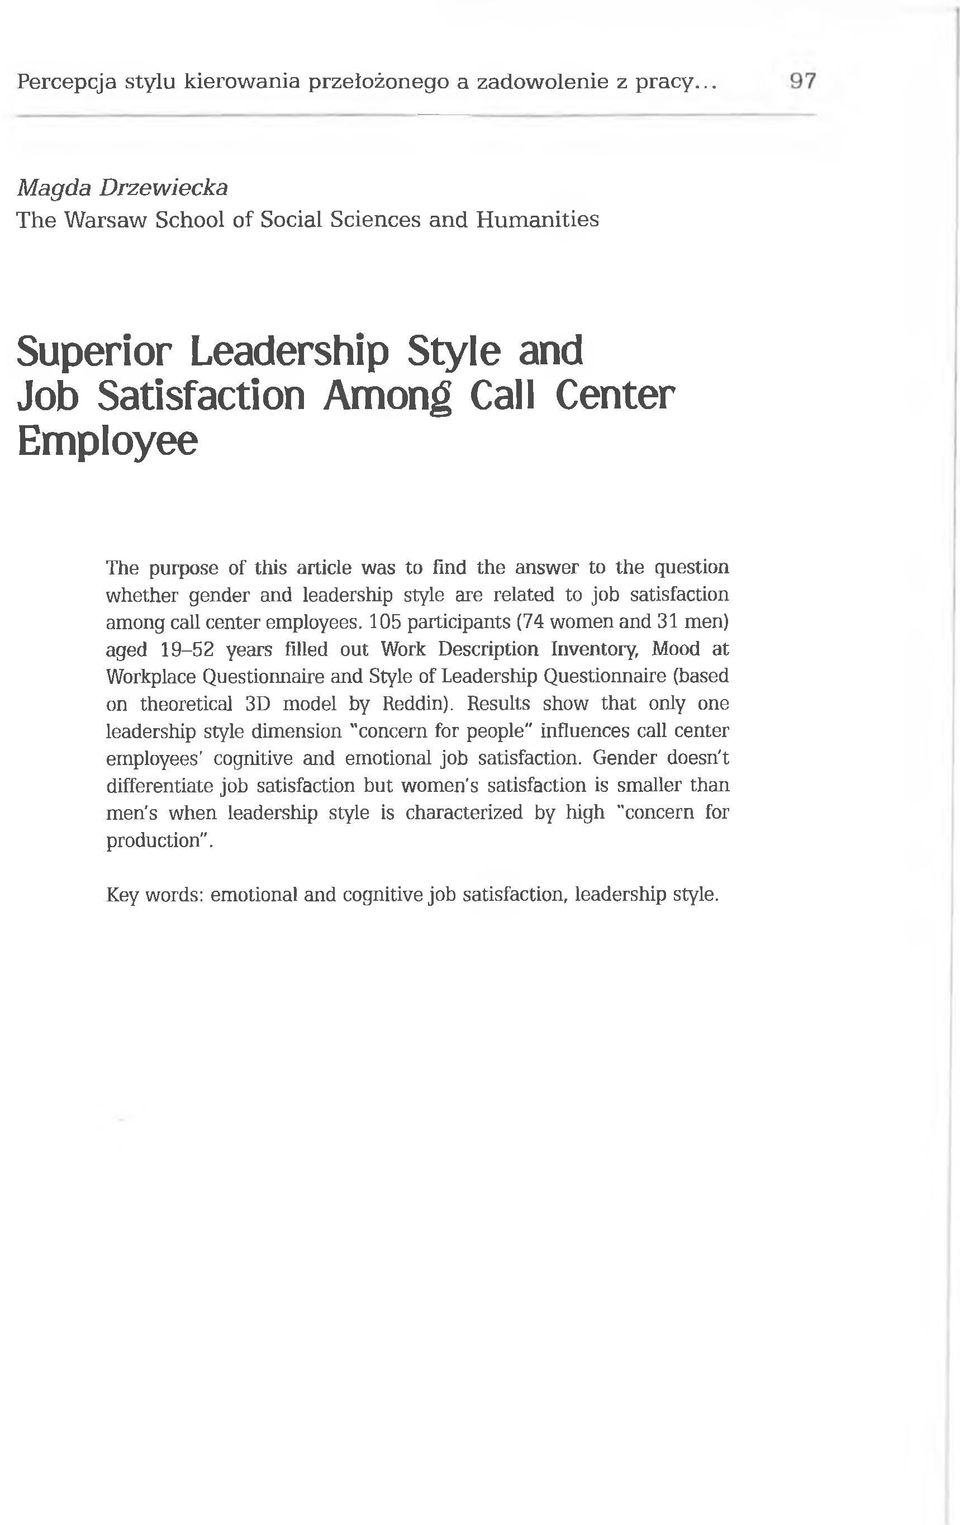 answer to the question whether gender and leadership style are related to job satisfaction among call center employees.